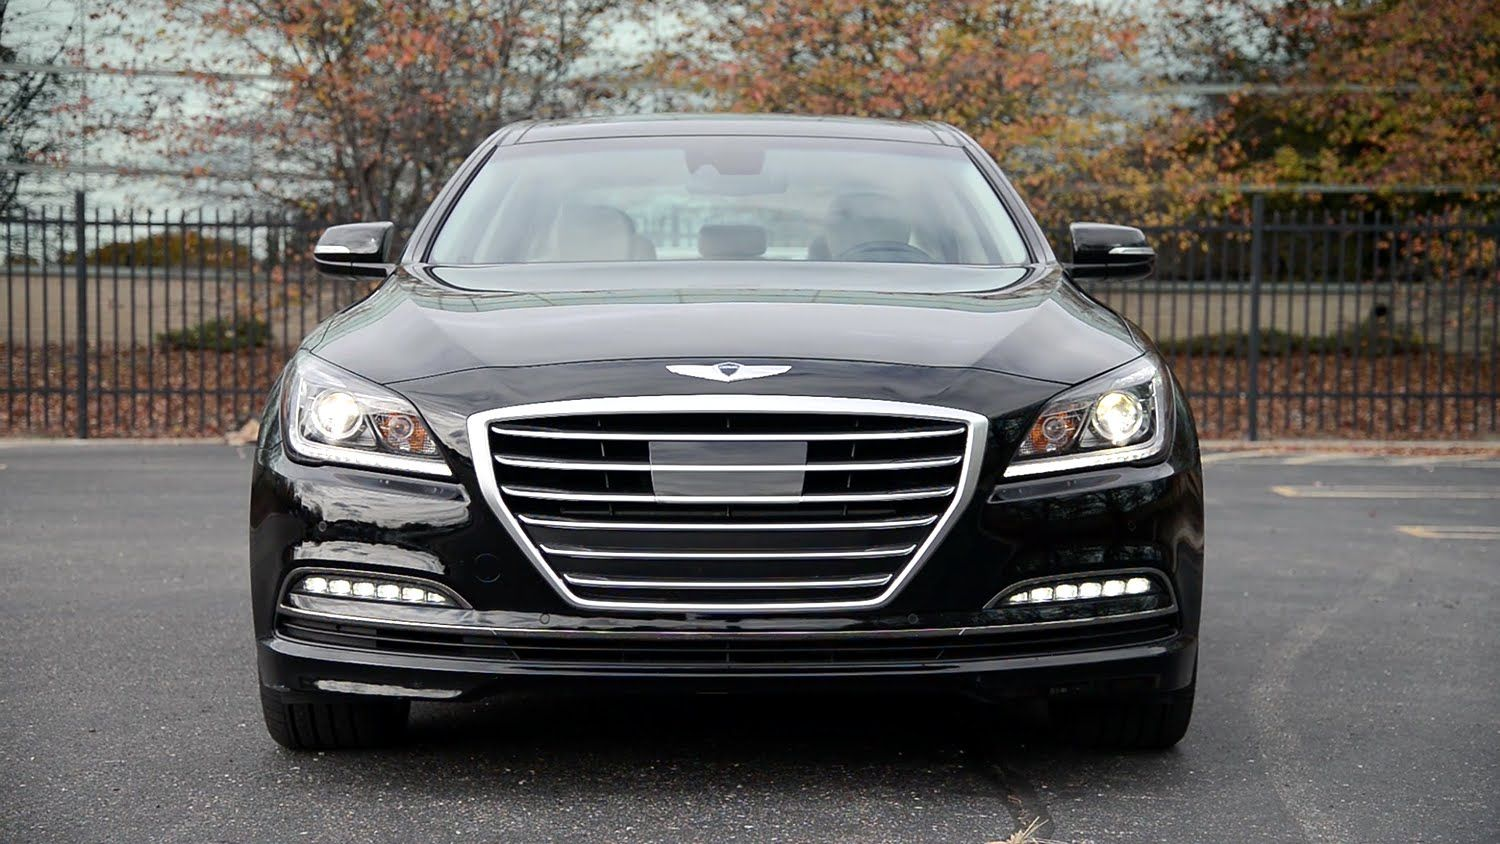 Hyundai genesis is the amazing car that offers the satisfaction one at the powertrain and also the design of the car this car also has some models